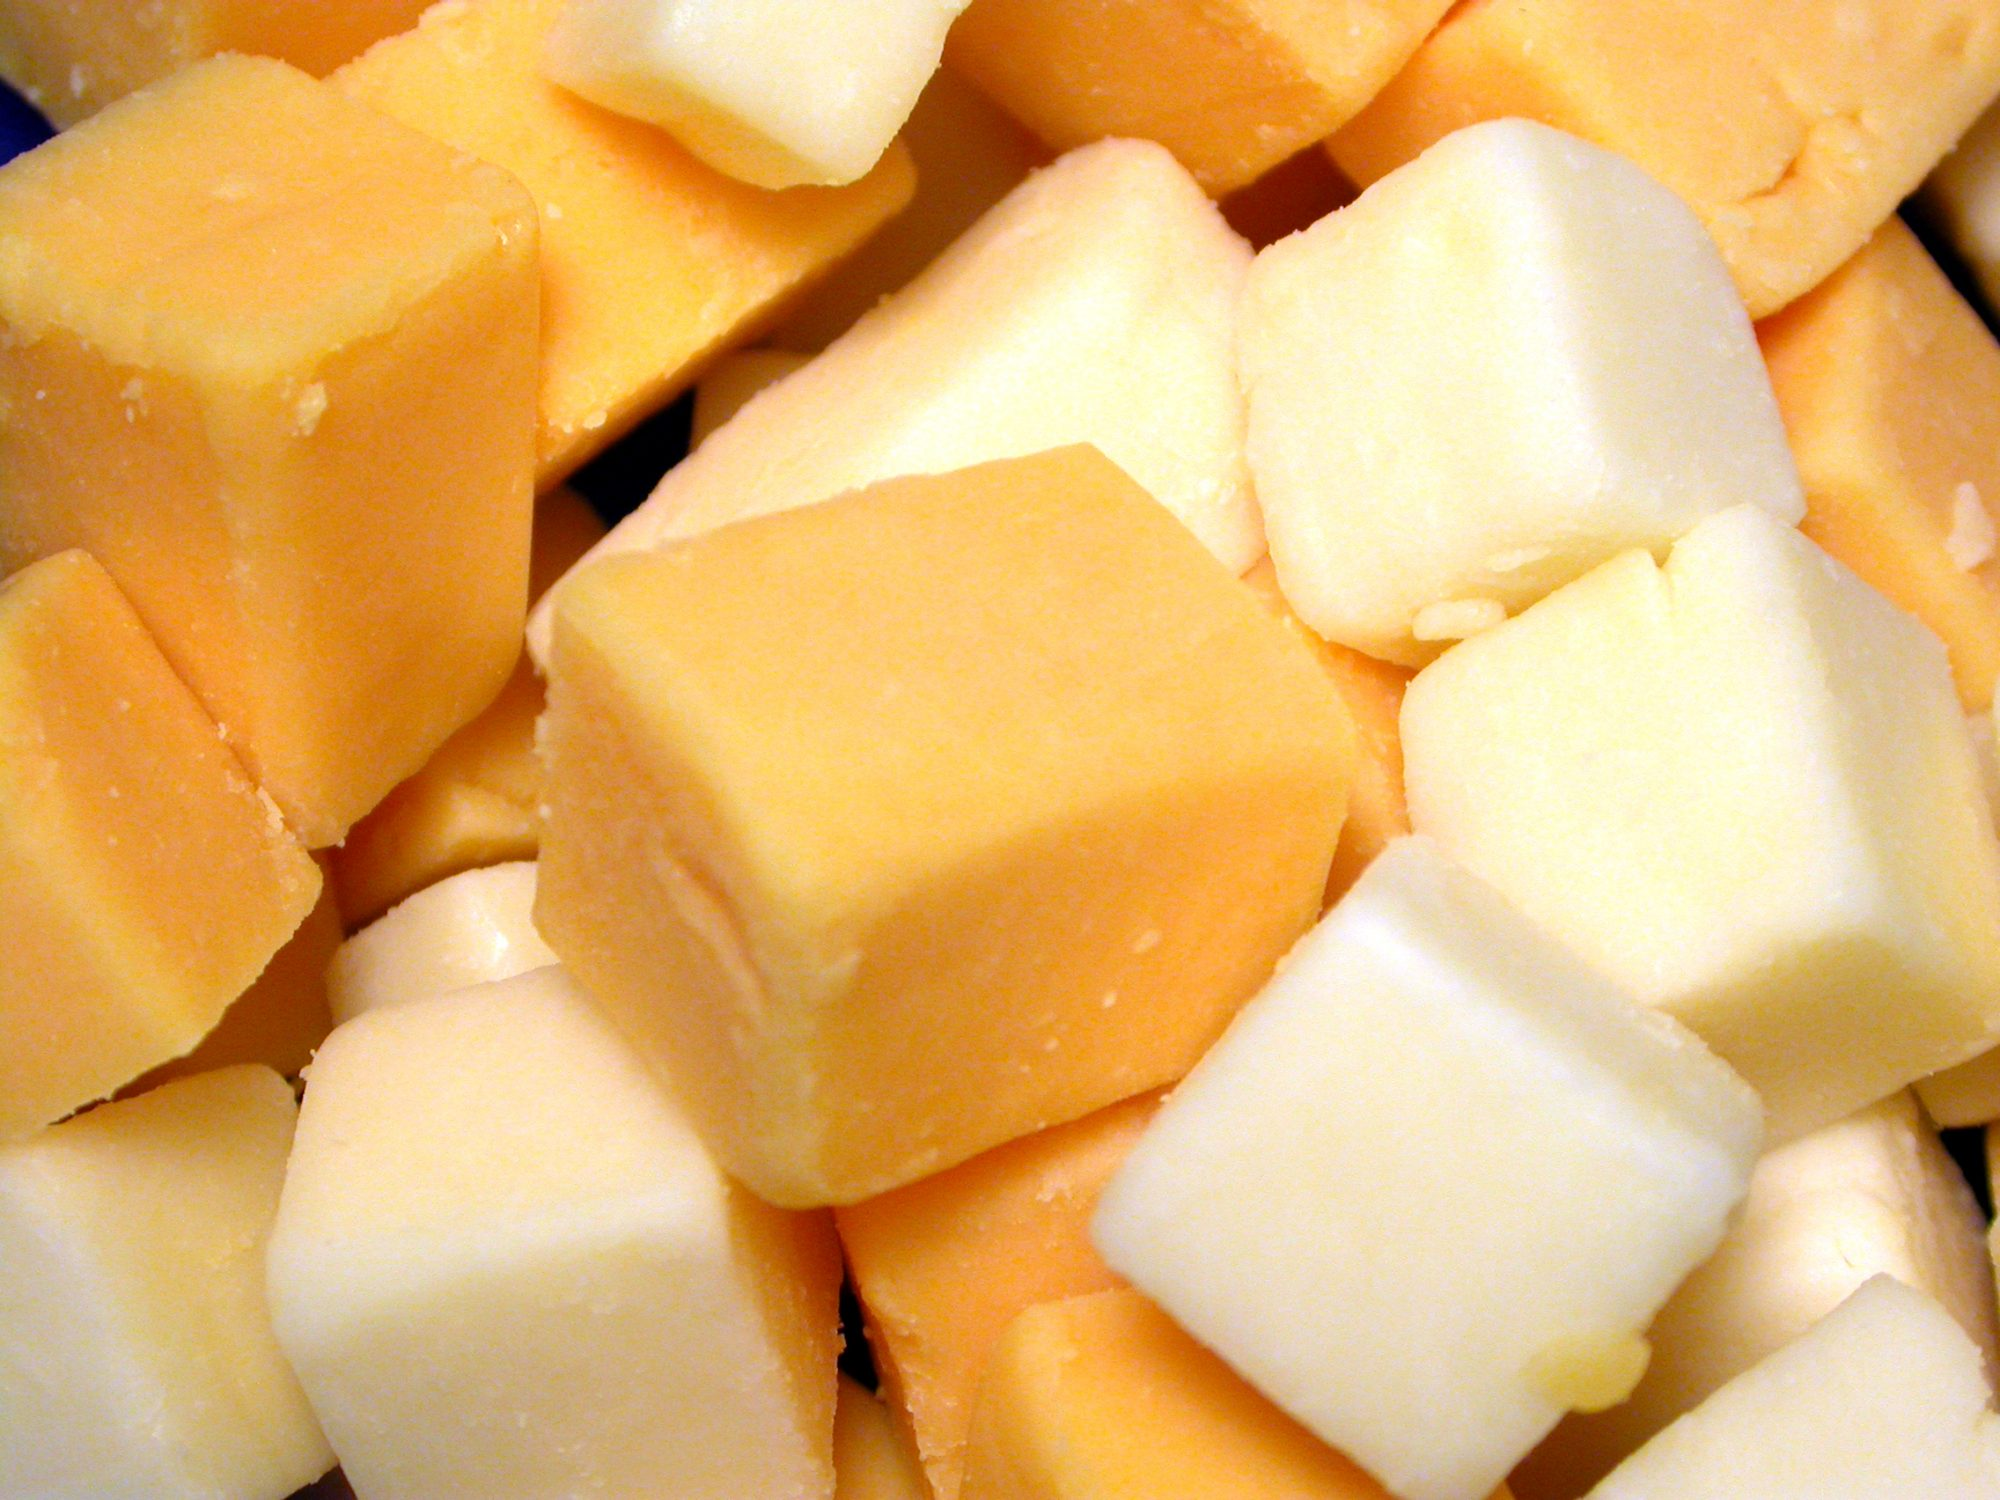 Finally: The Difference Between White and Orange Cheddar Cheese Explained